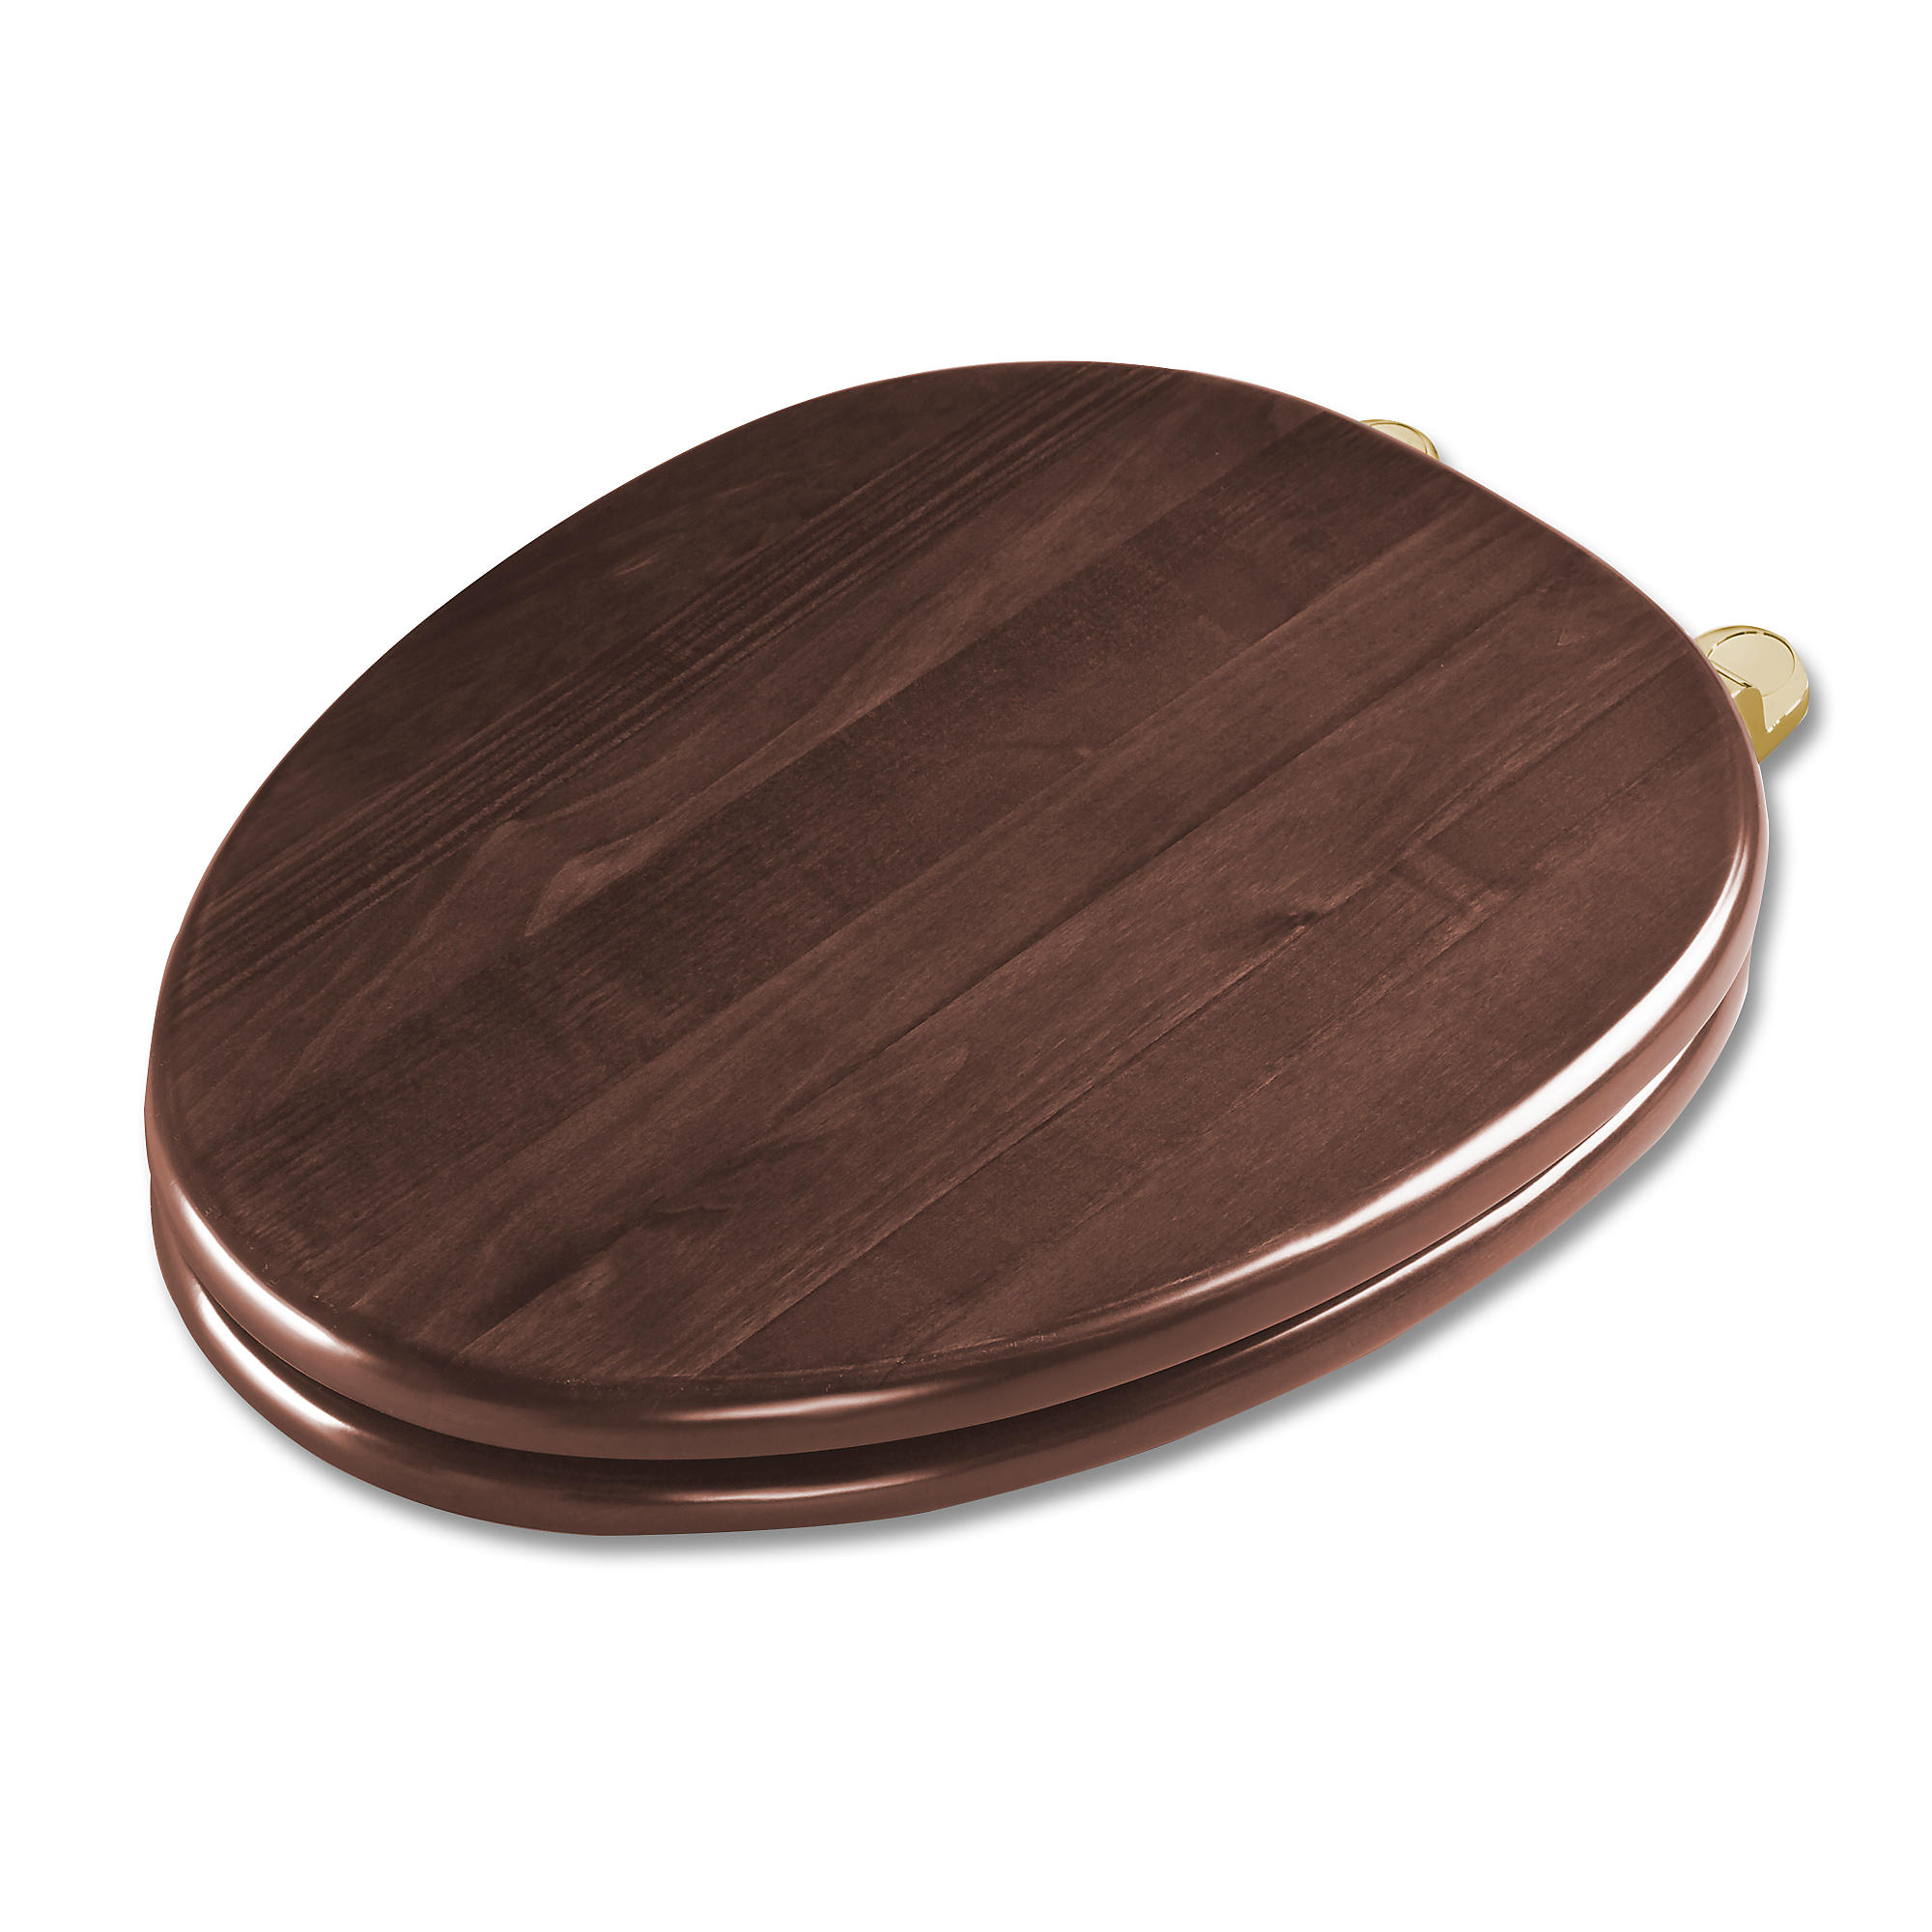 Ss303 pb maple softclose  toilet seat   round 0